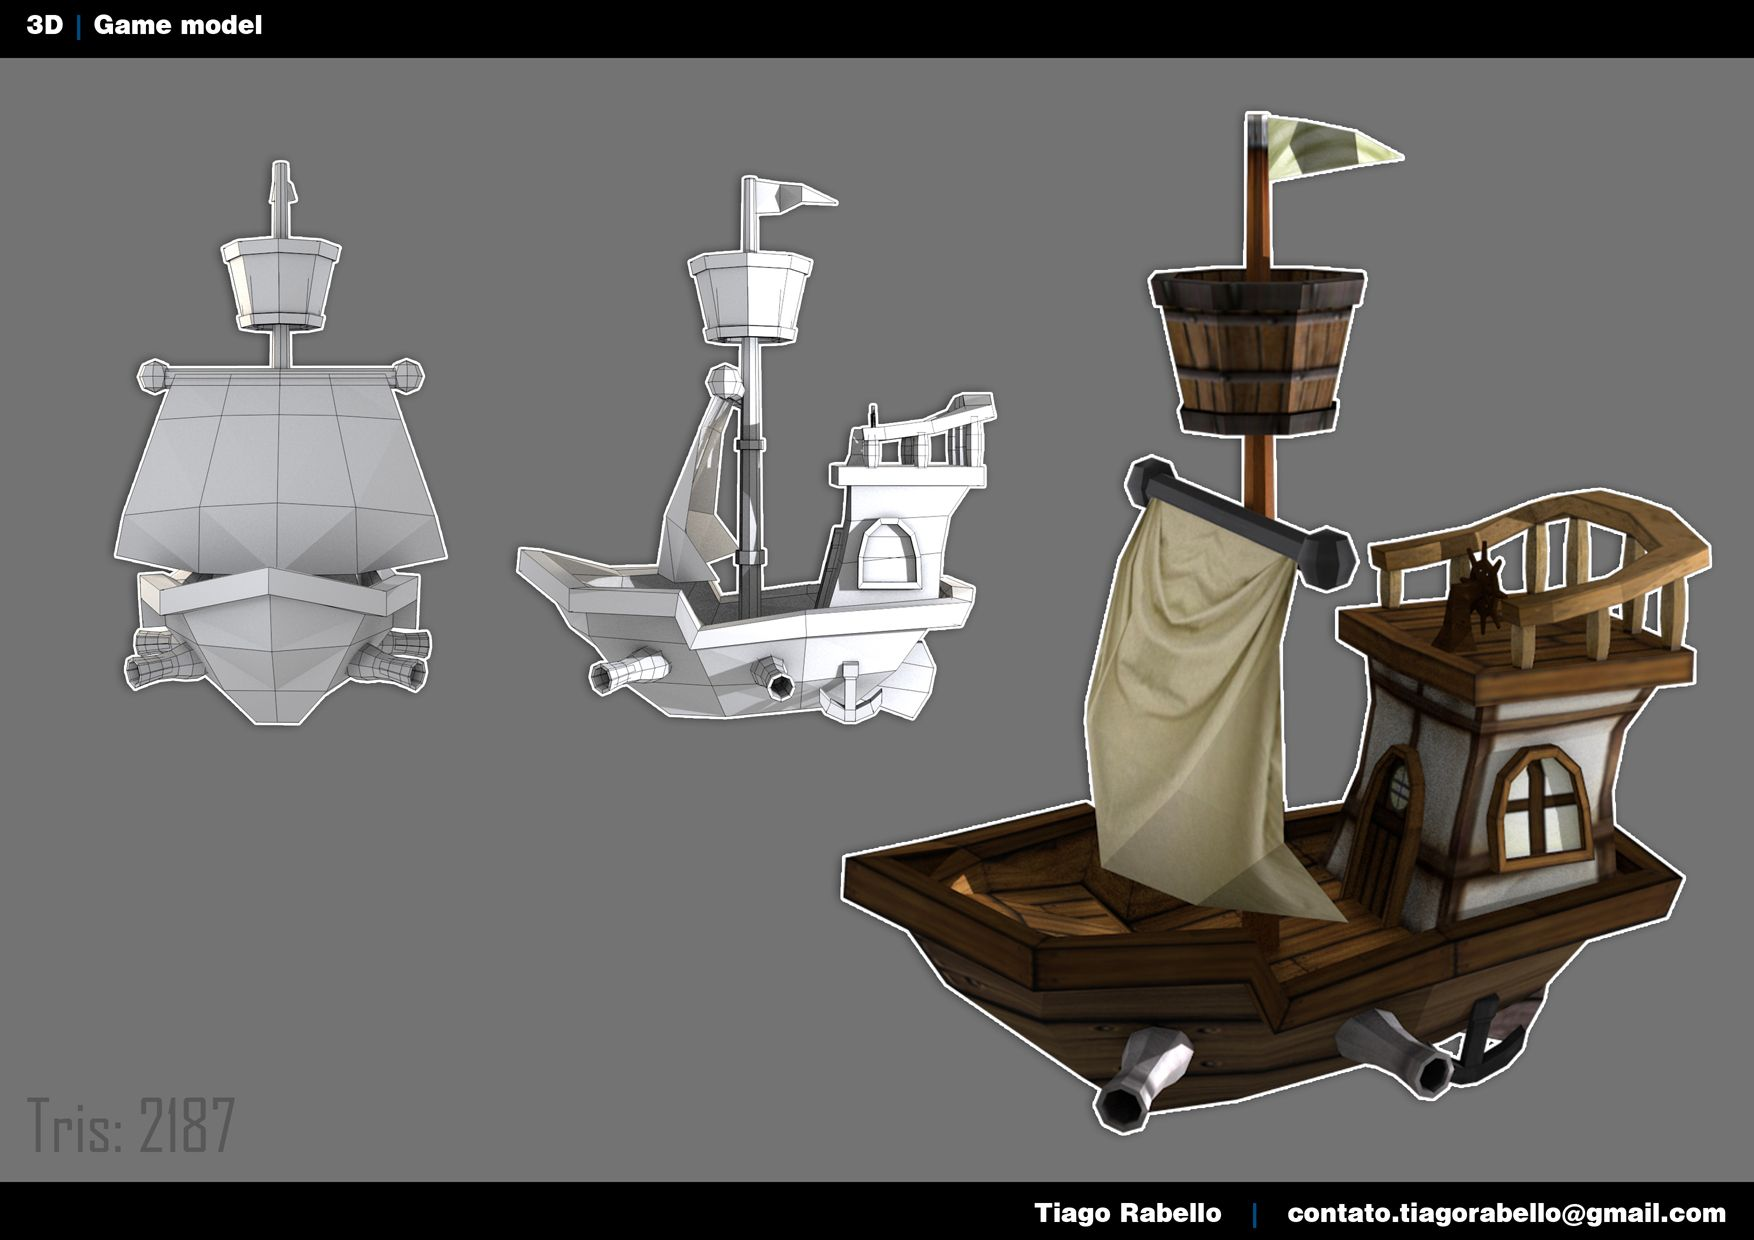 3D low poly ship model by *Tiago Rabello